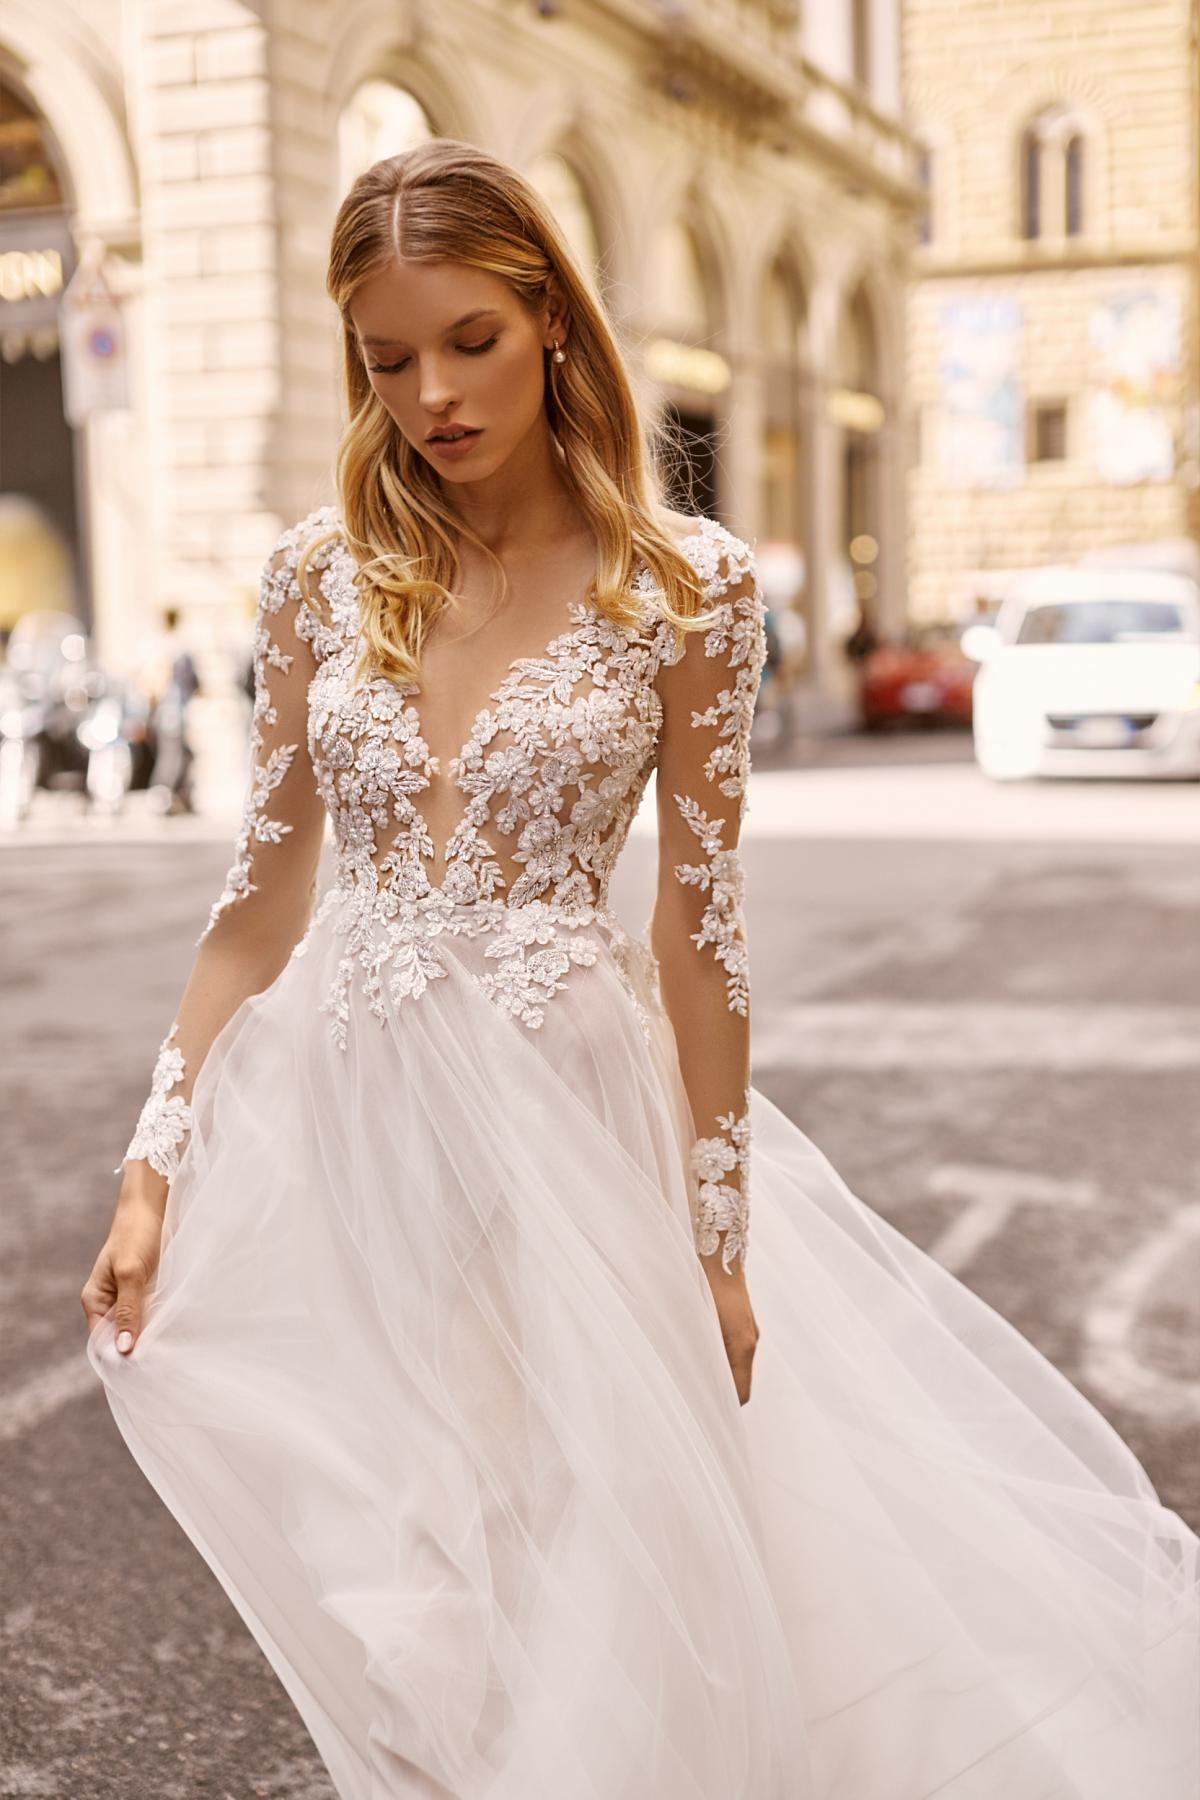 Impossible to look away from the delightfully crafted couturier wedding dresses Tom Sebastien